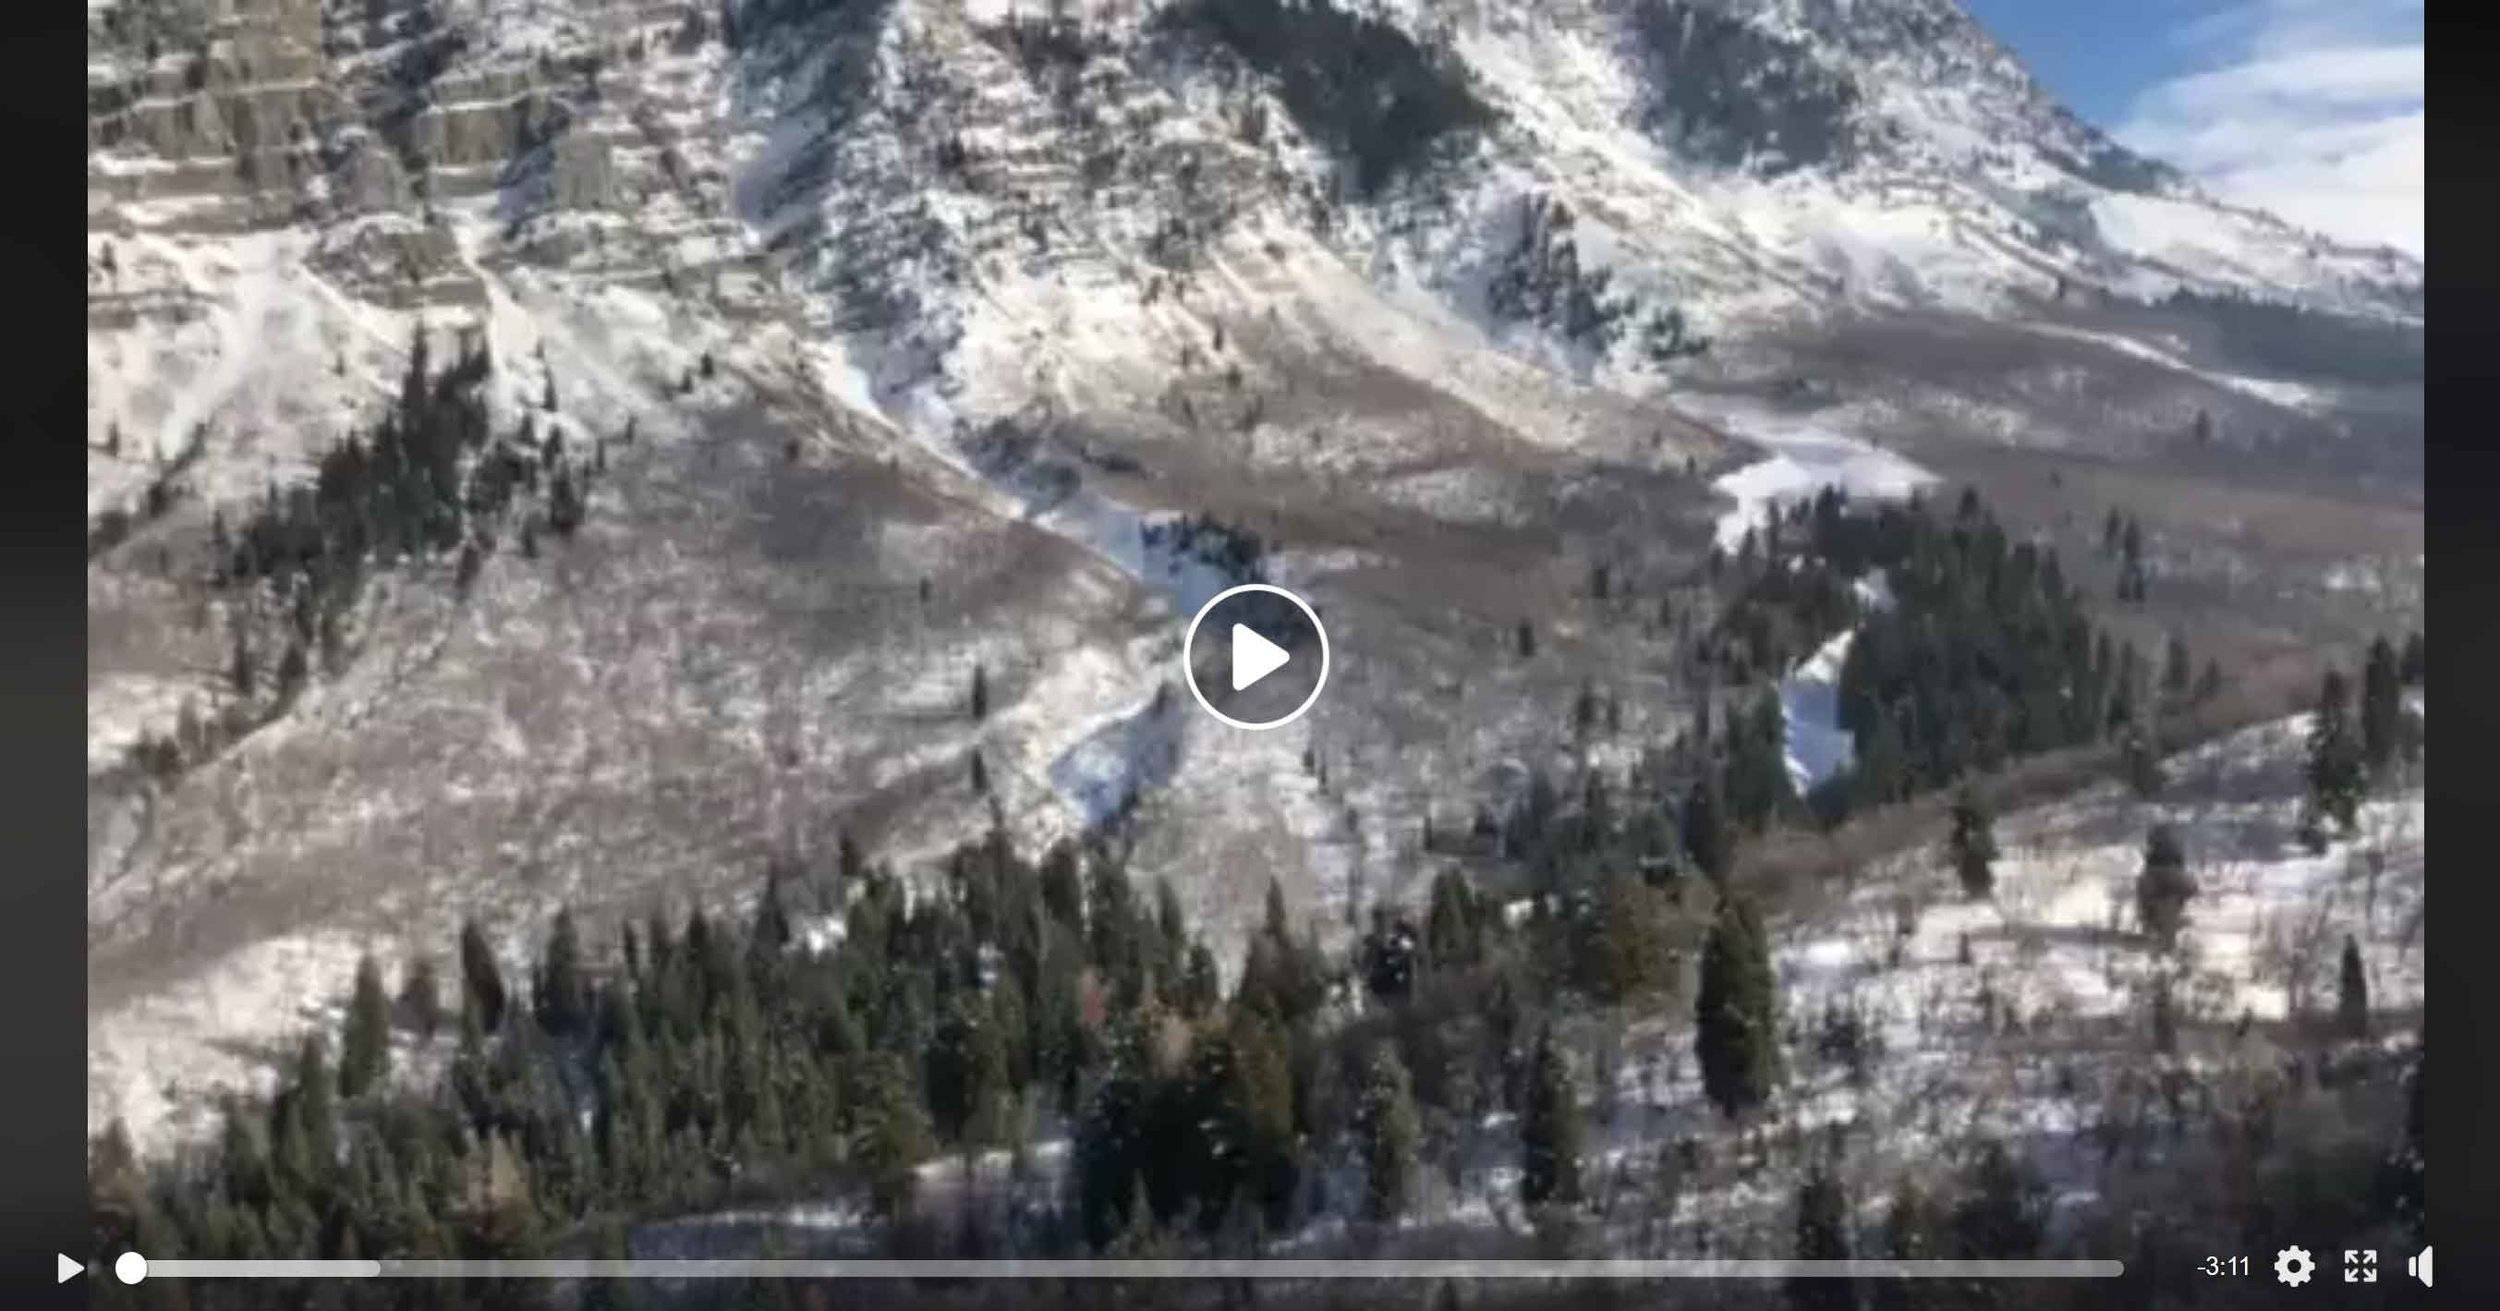 """Video on Facebook  by Matt Galland – """" Second major slide down face of Cascade!"""" Video shot from a helicopter flying the slide path showing the length of the run-out zone. It's an amazing sight. (Posted on FB Jan. 29, 2019.)"""